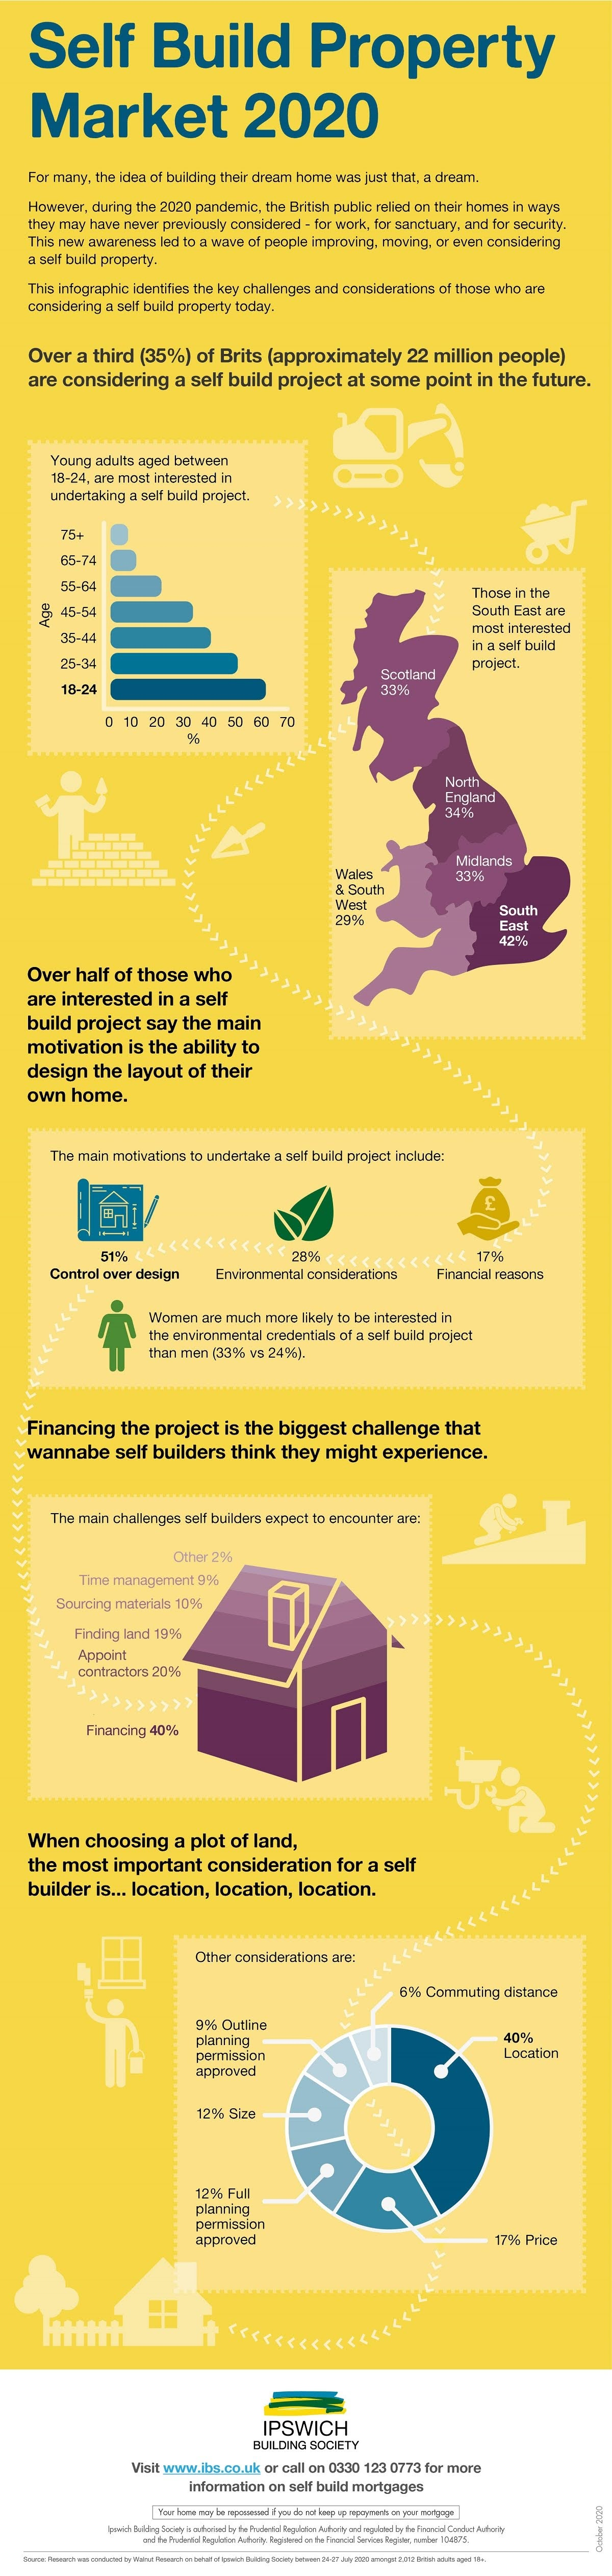 celebrating-right-to-build-day-a-look-at-the-self-build-property-market-2020-infographic